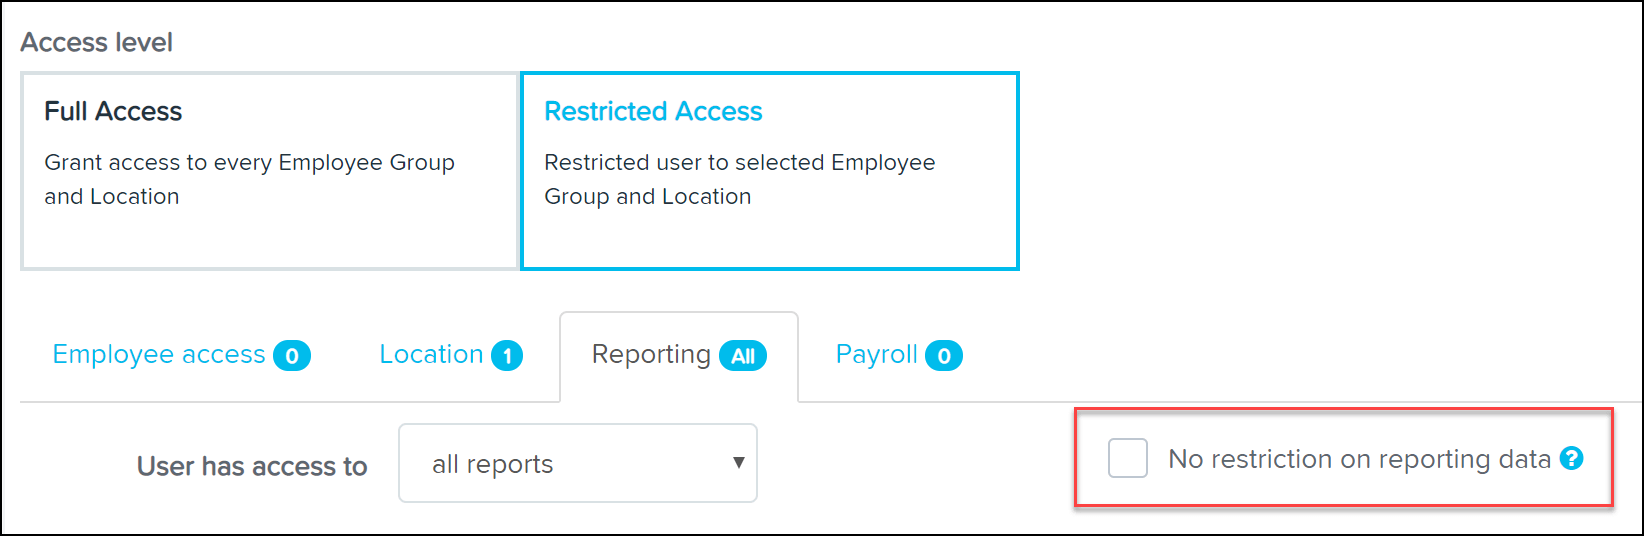 No restriction on reporting data